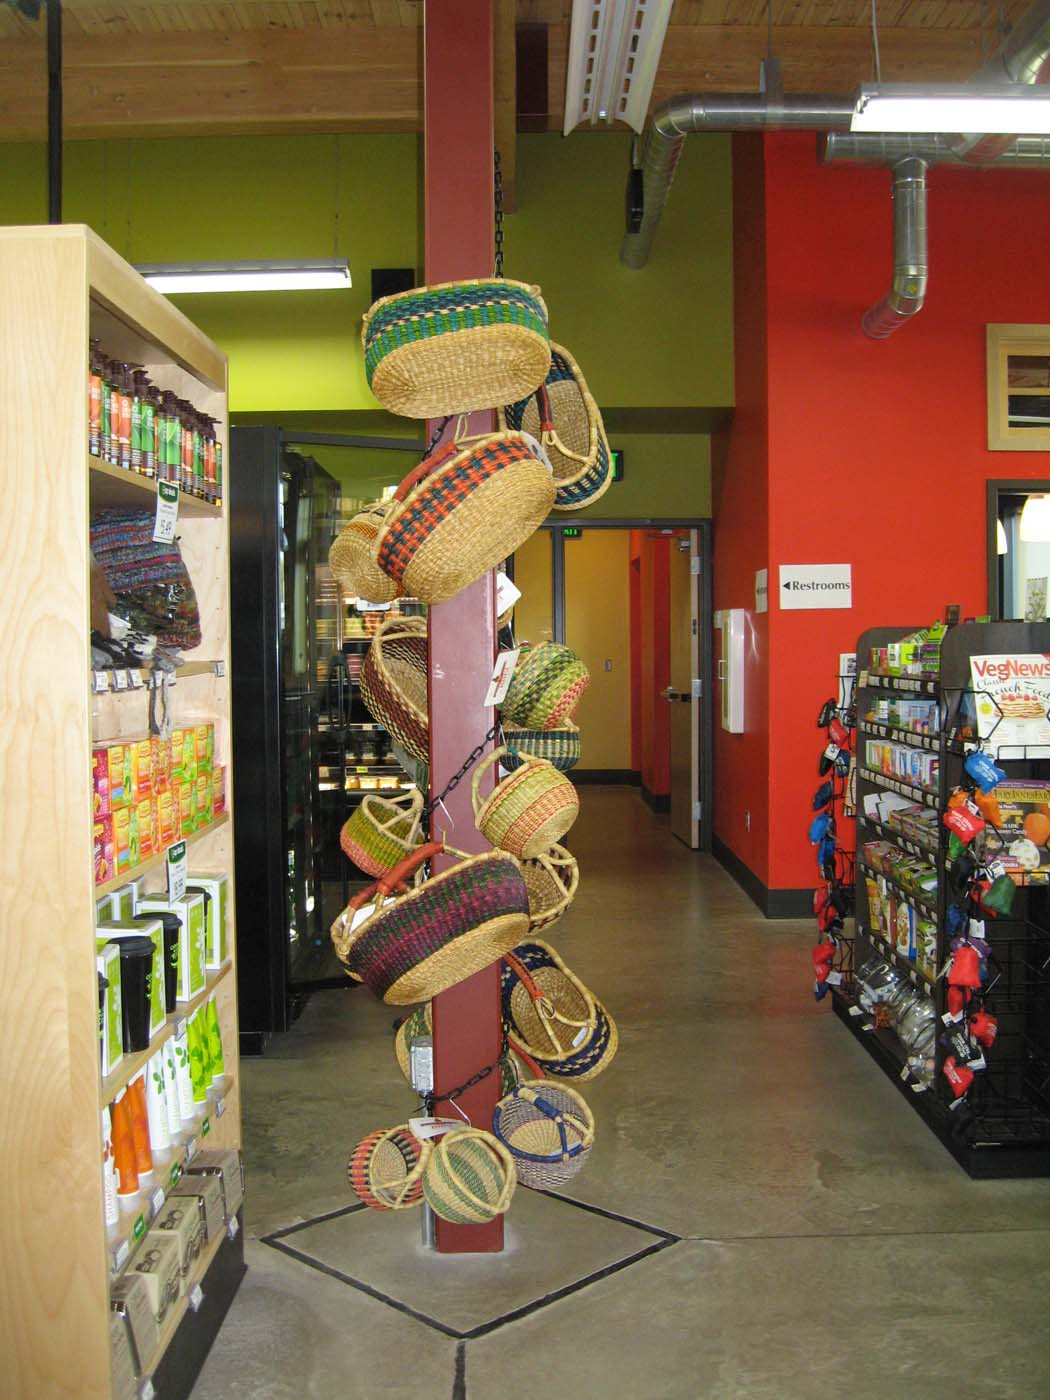 Chain displays allow stores to maximize their merchandising space